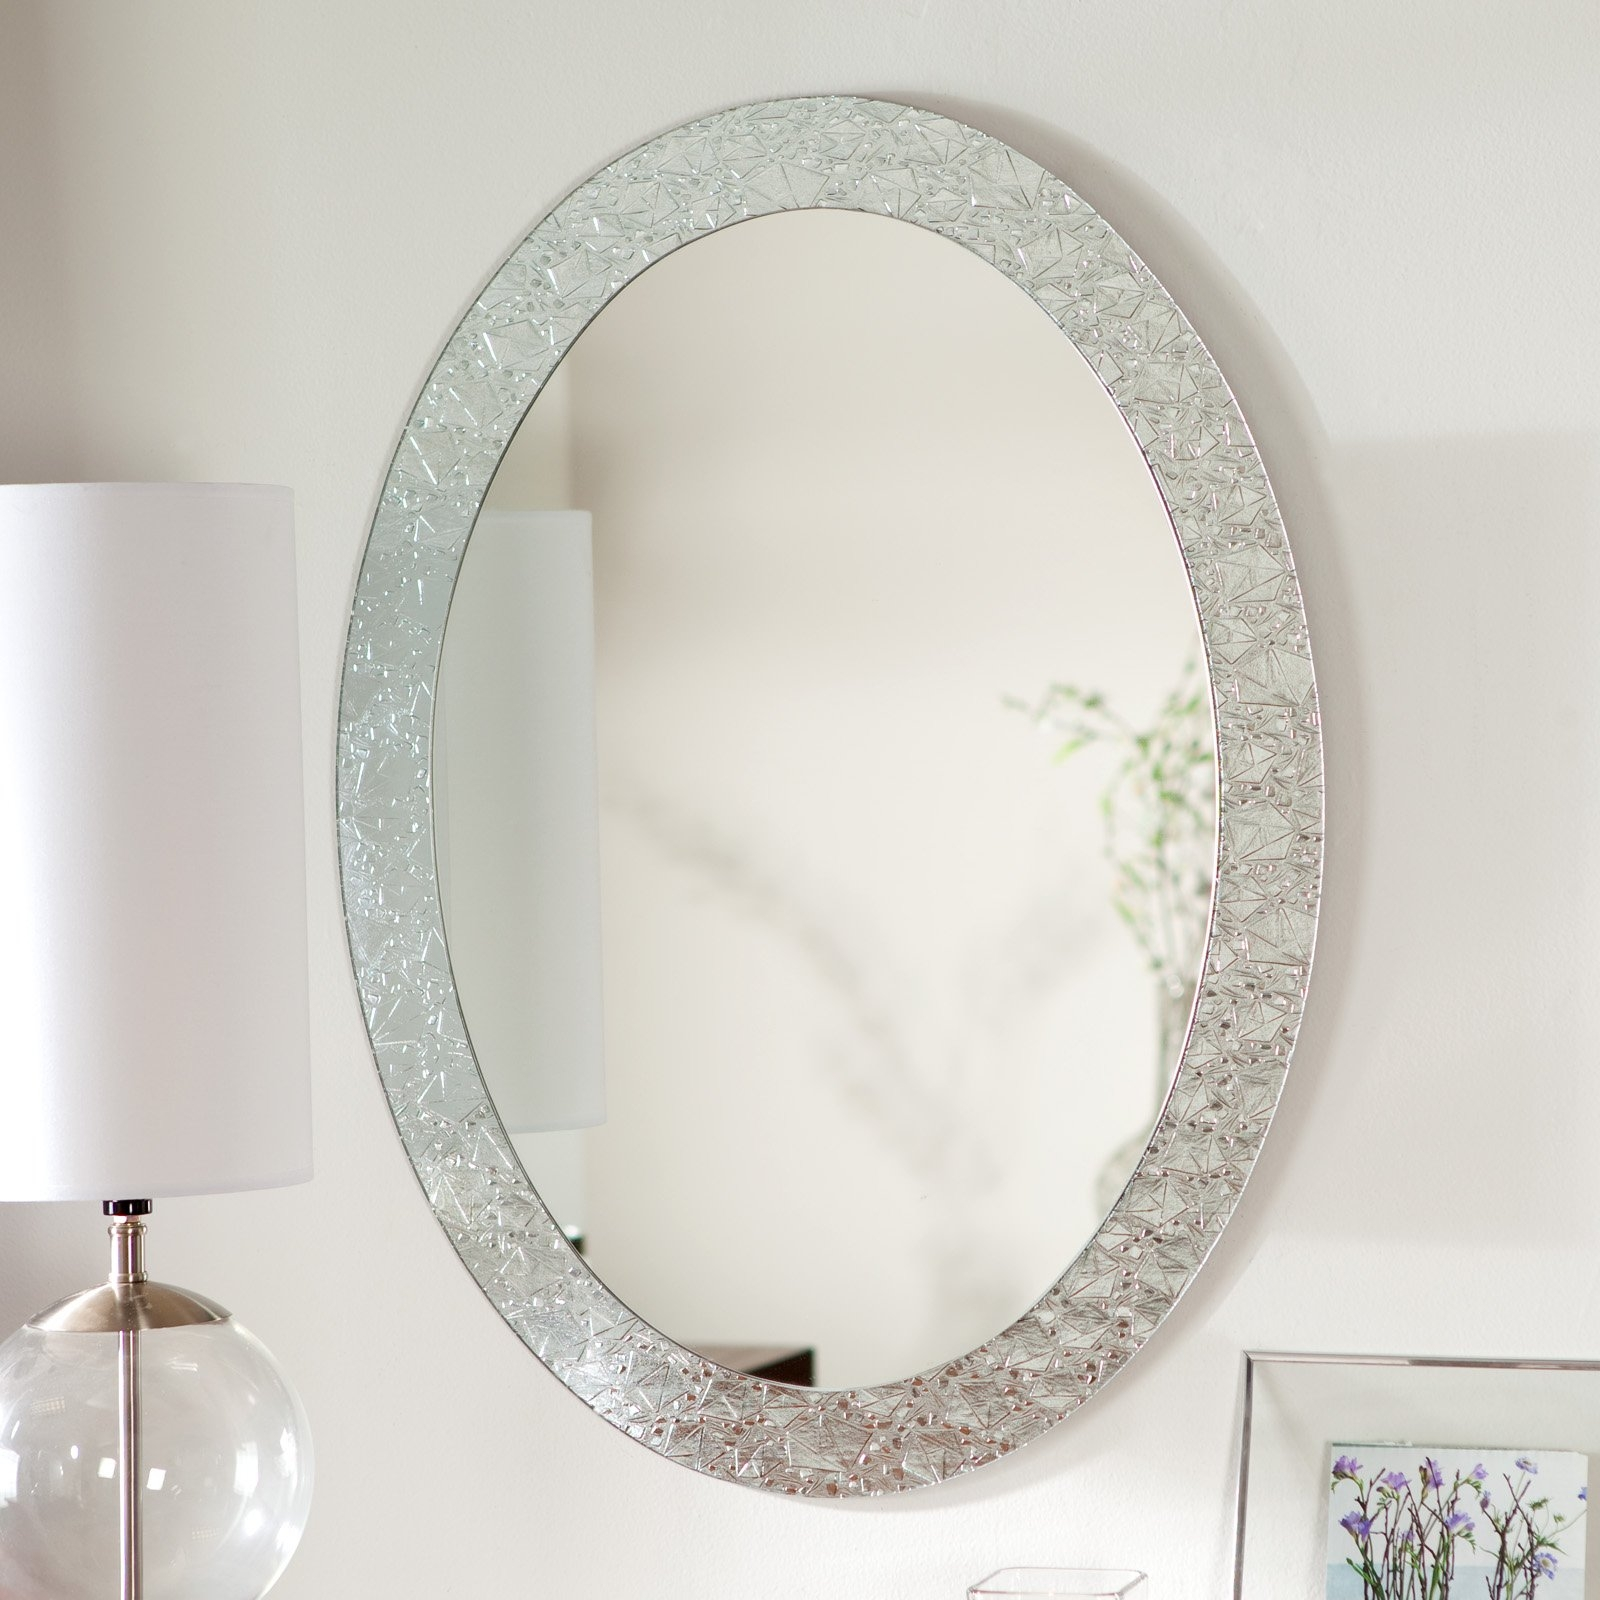 Brushed Nickel Decorative Wall Mirrors